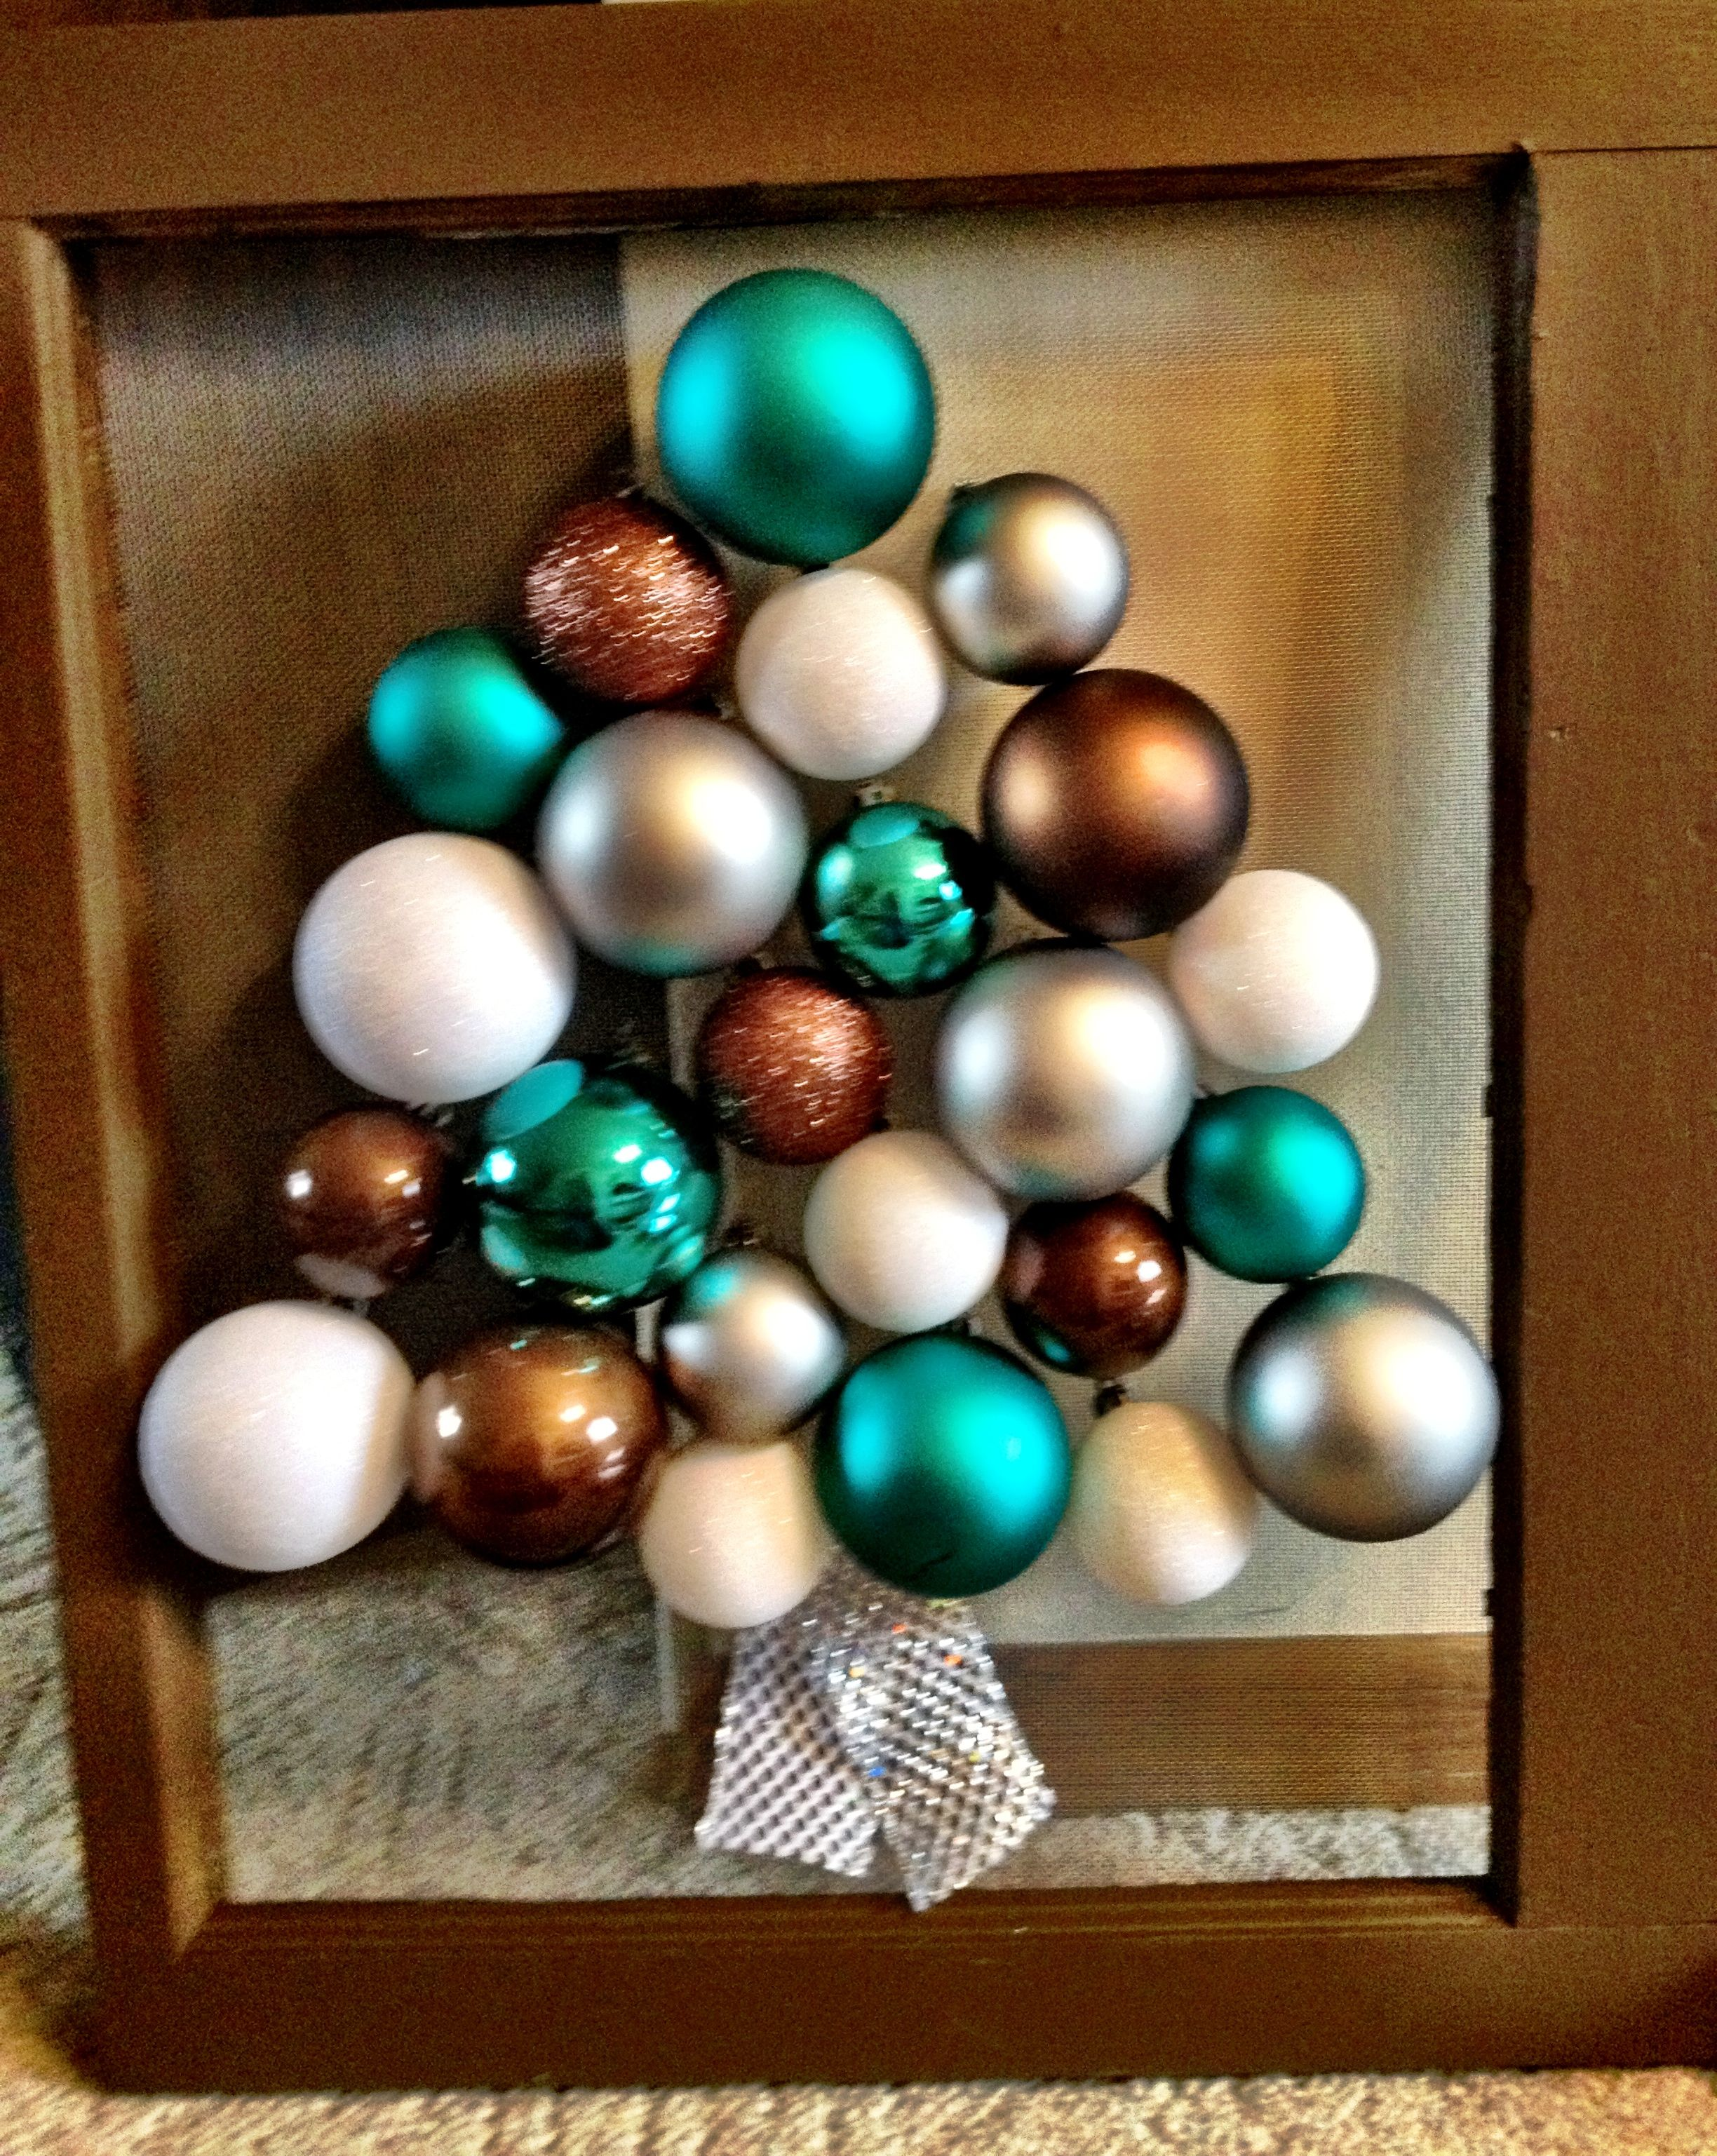 Wooden Window Frame Crafts Sometimes I Get Crafty Christmas Tree Made From Ornaments On An